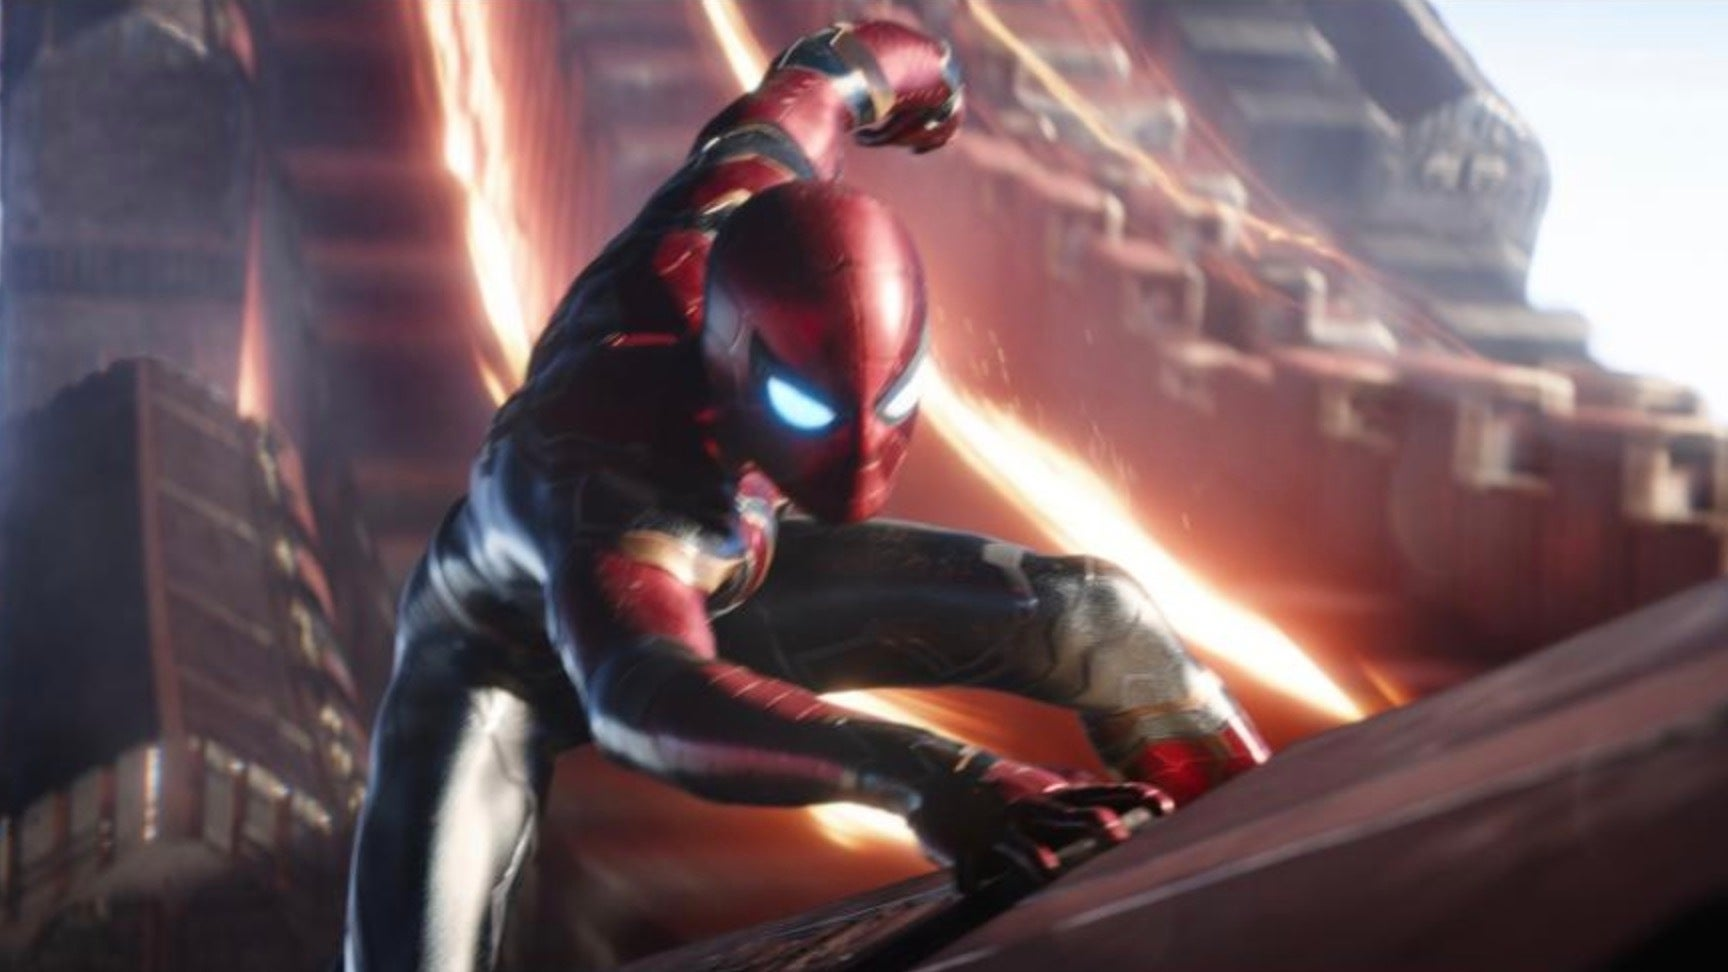 The Sequel To Spider-Man Homecoming Spans The Globe